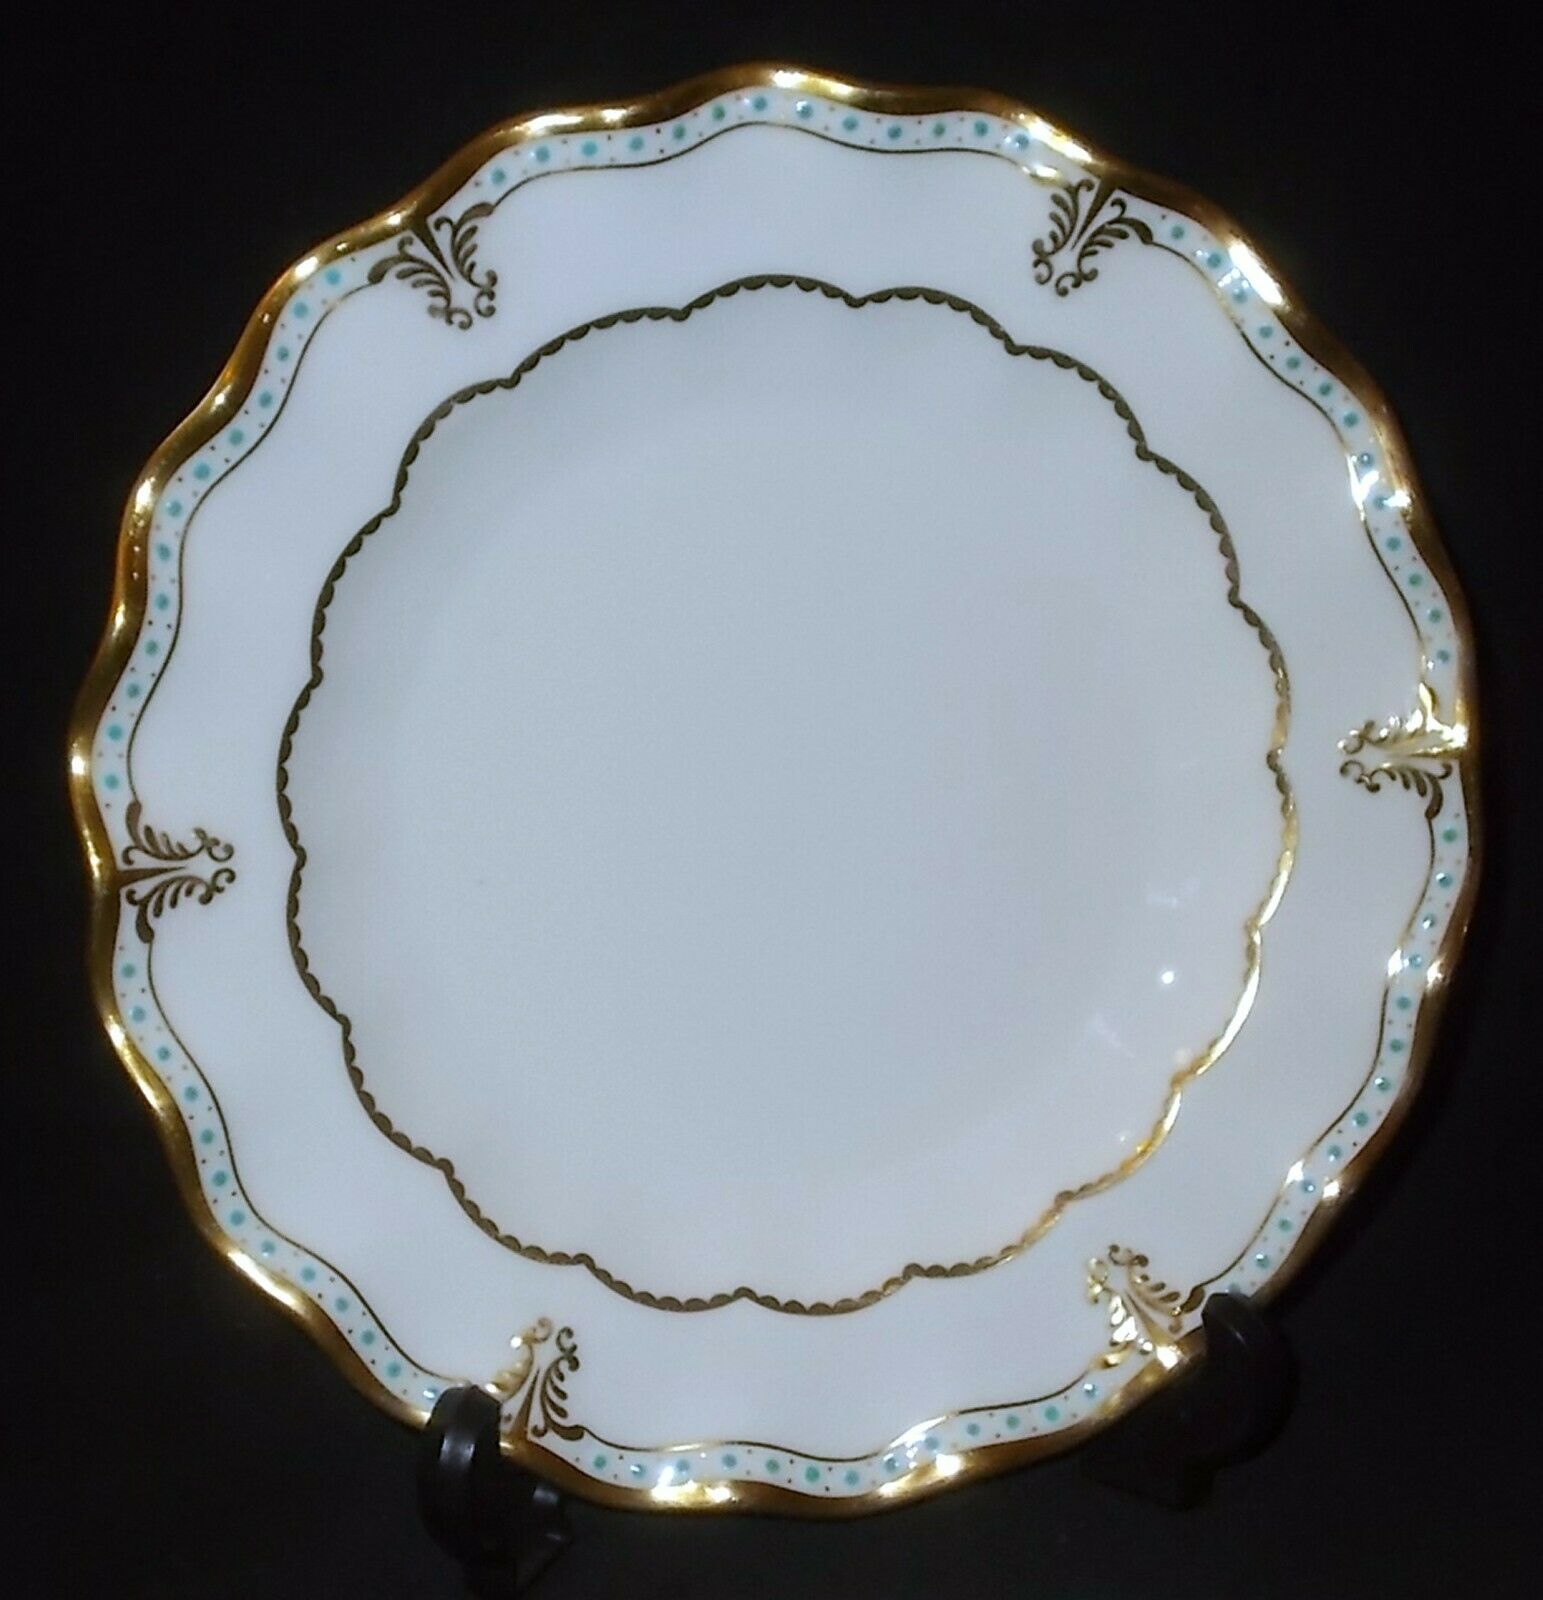 Image 01 - Royal Crown Derby LOMBARDY Dessert Plate